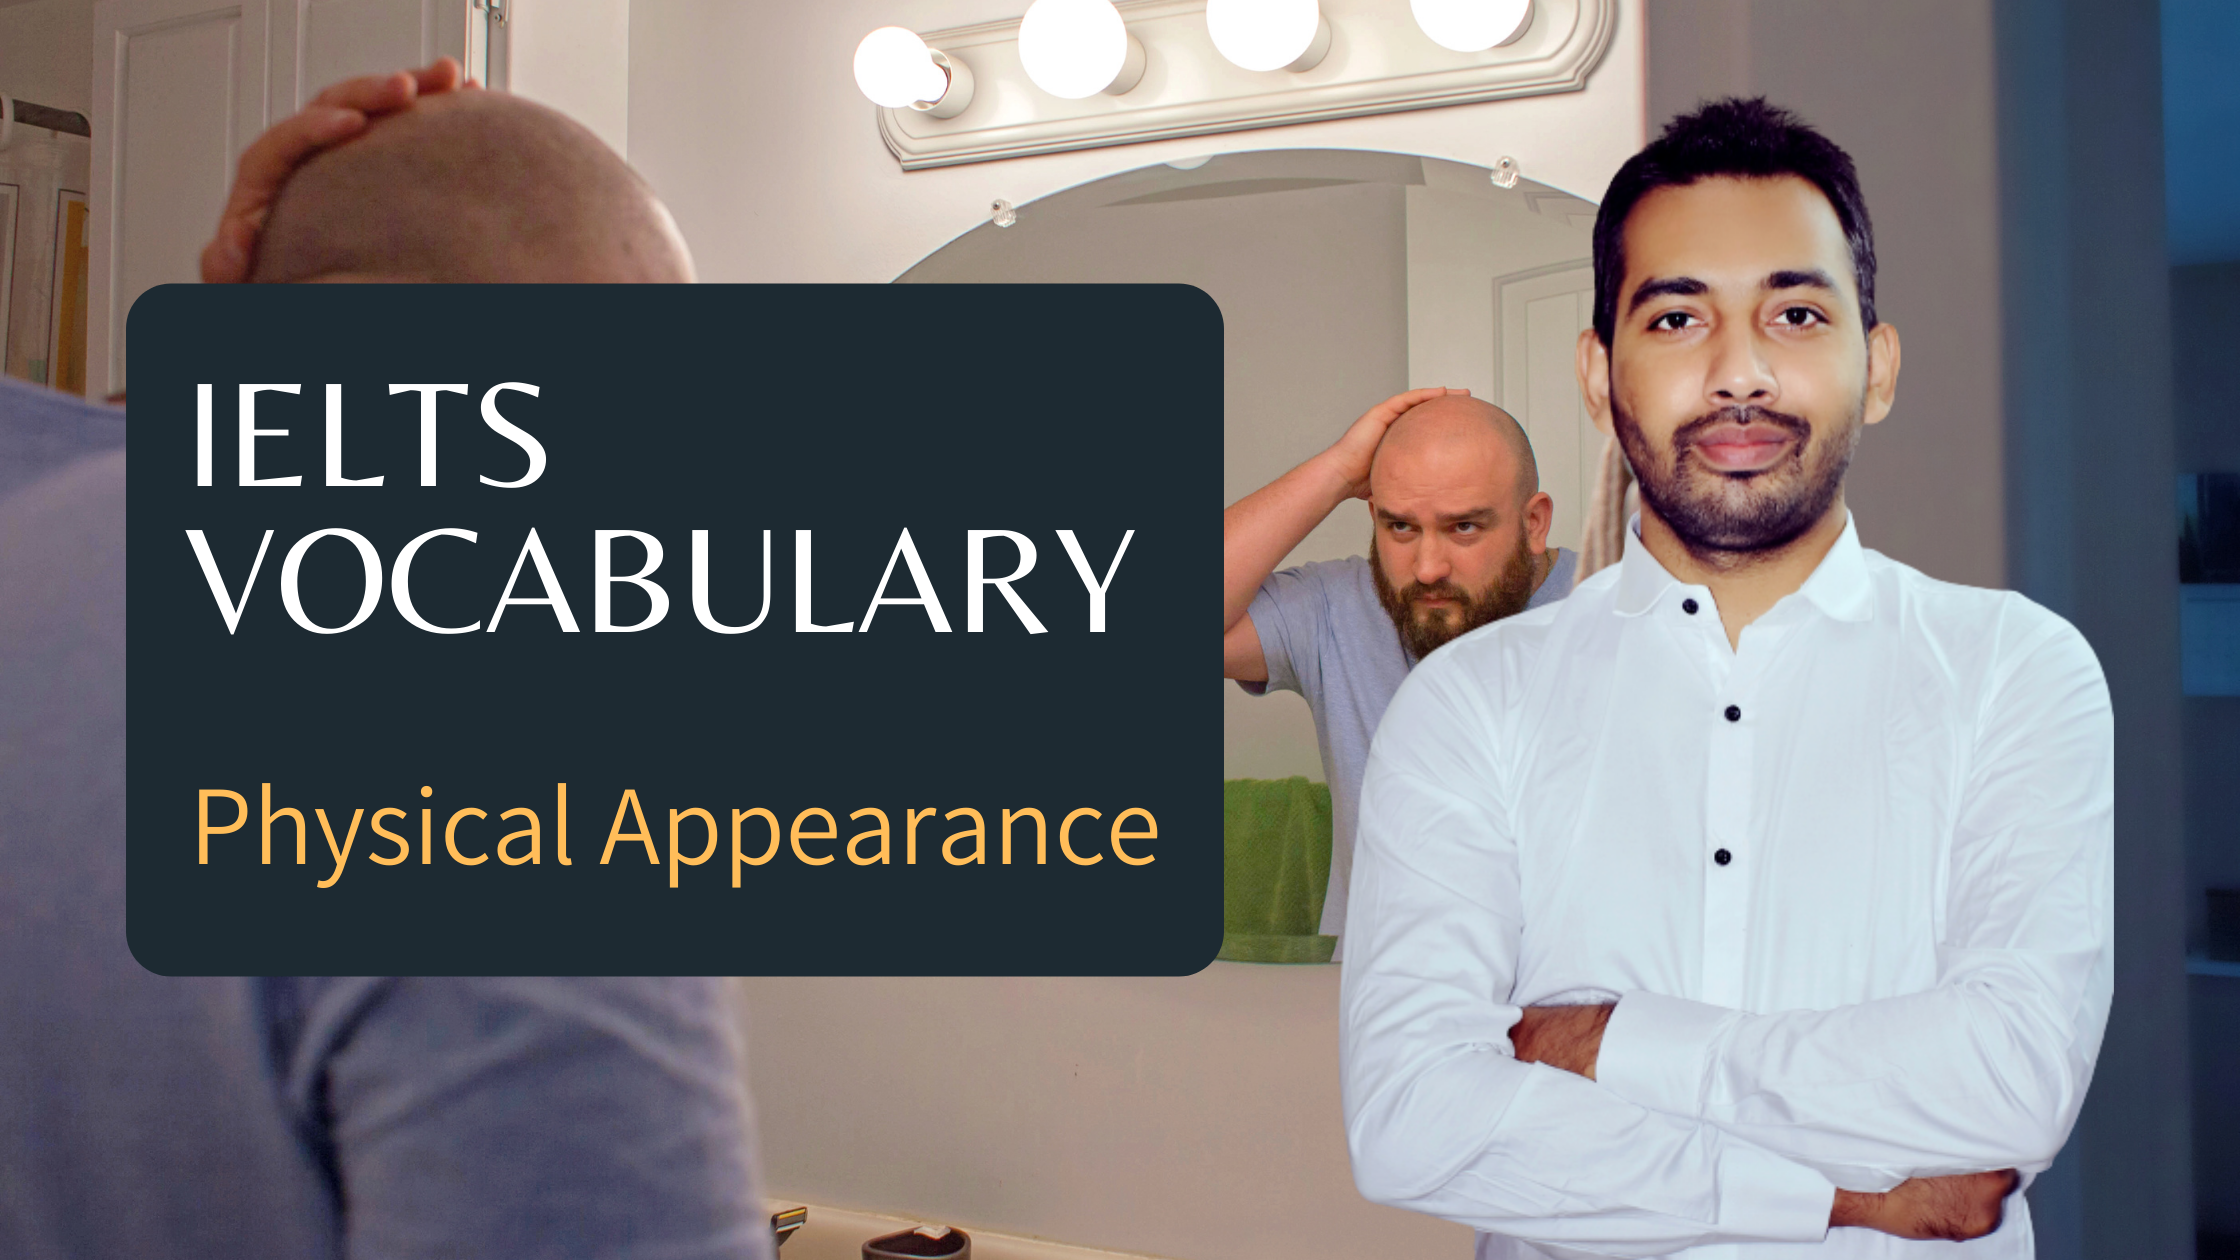 IELTS Vocabulary Physical Appearance - 31 Useful Expressions for Speaking